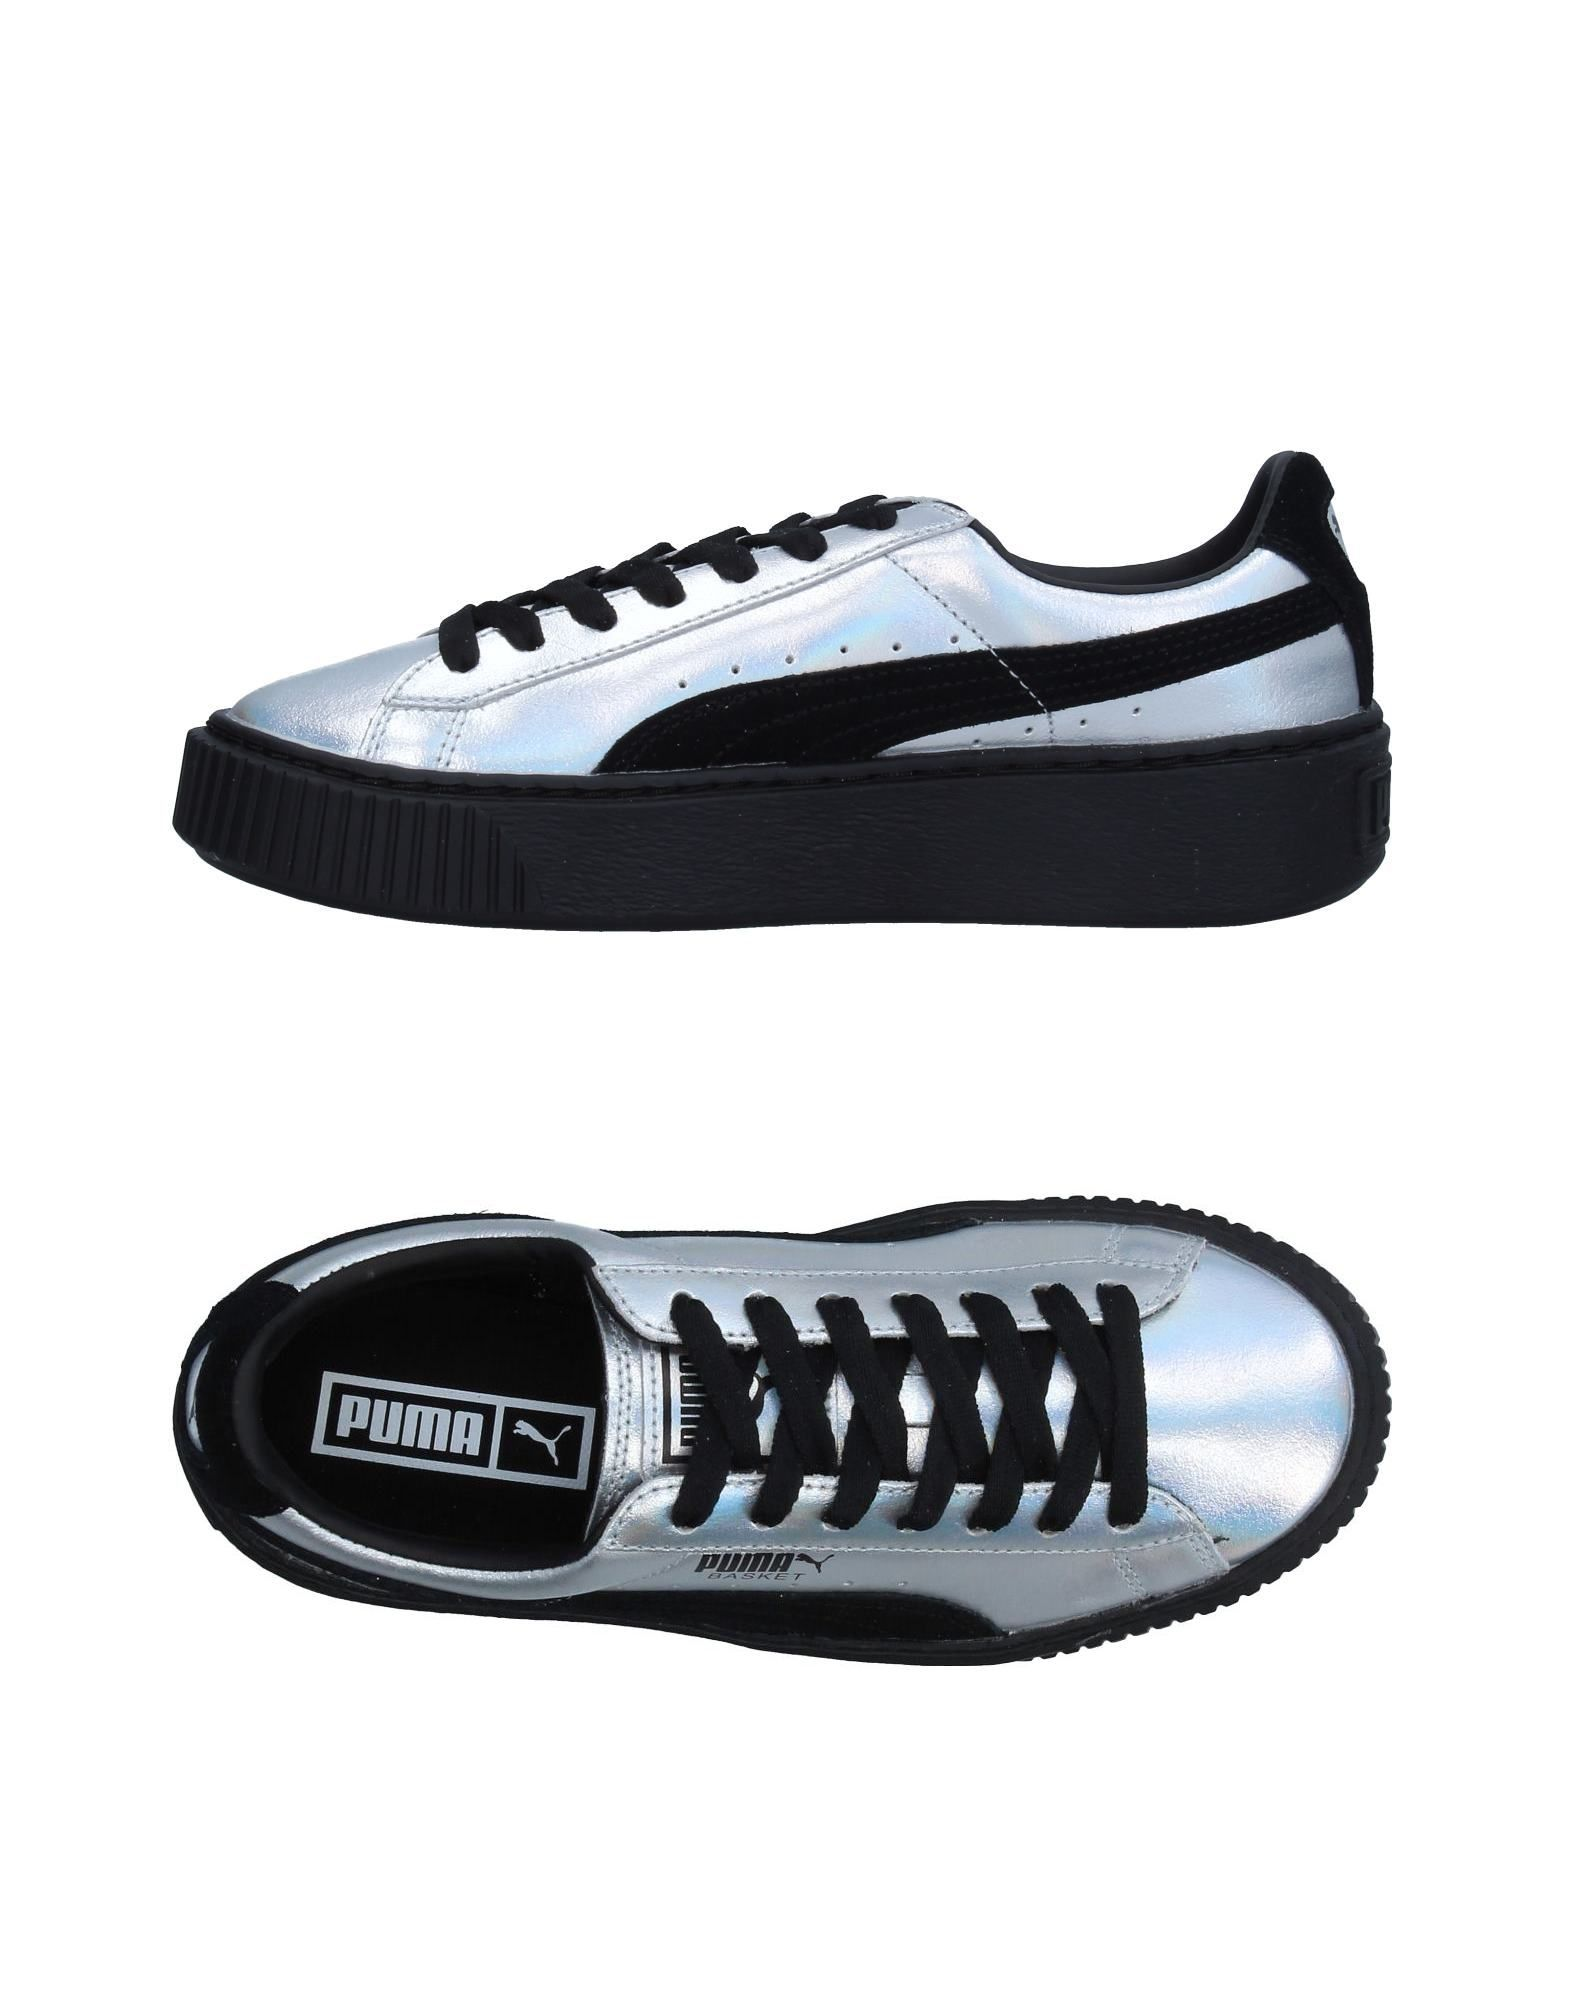 Puma Sneakers - Women Puma - Sneakers online on  Canada - Puma 11326433ML bf8e6b